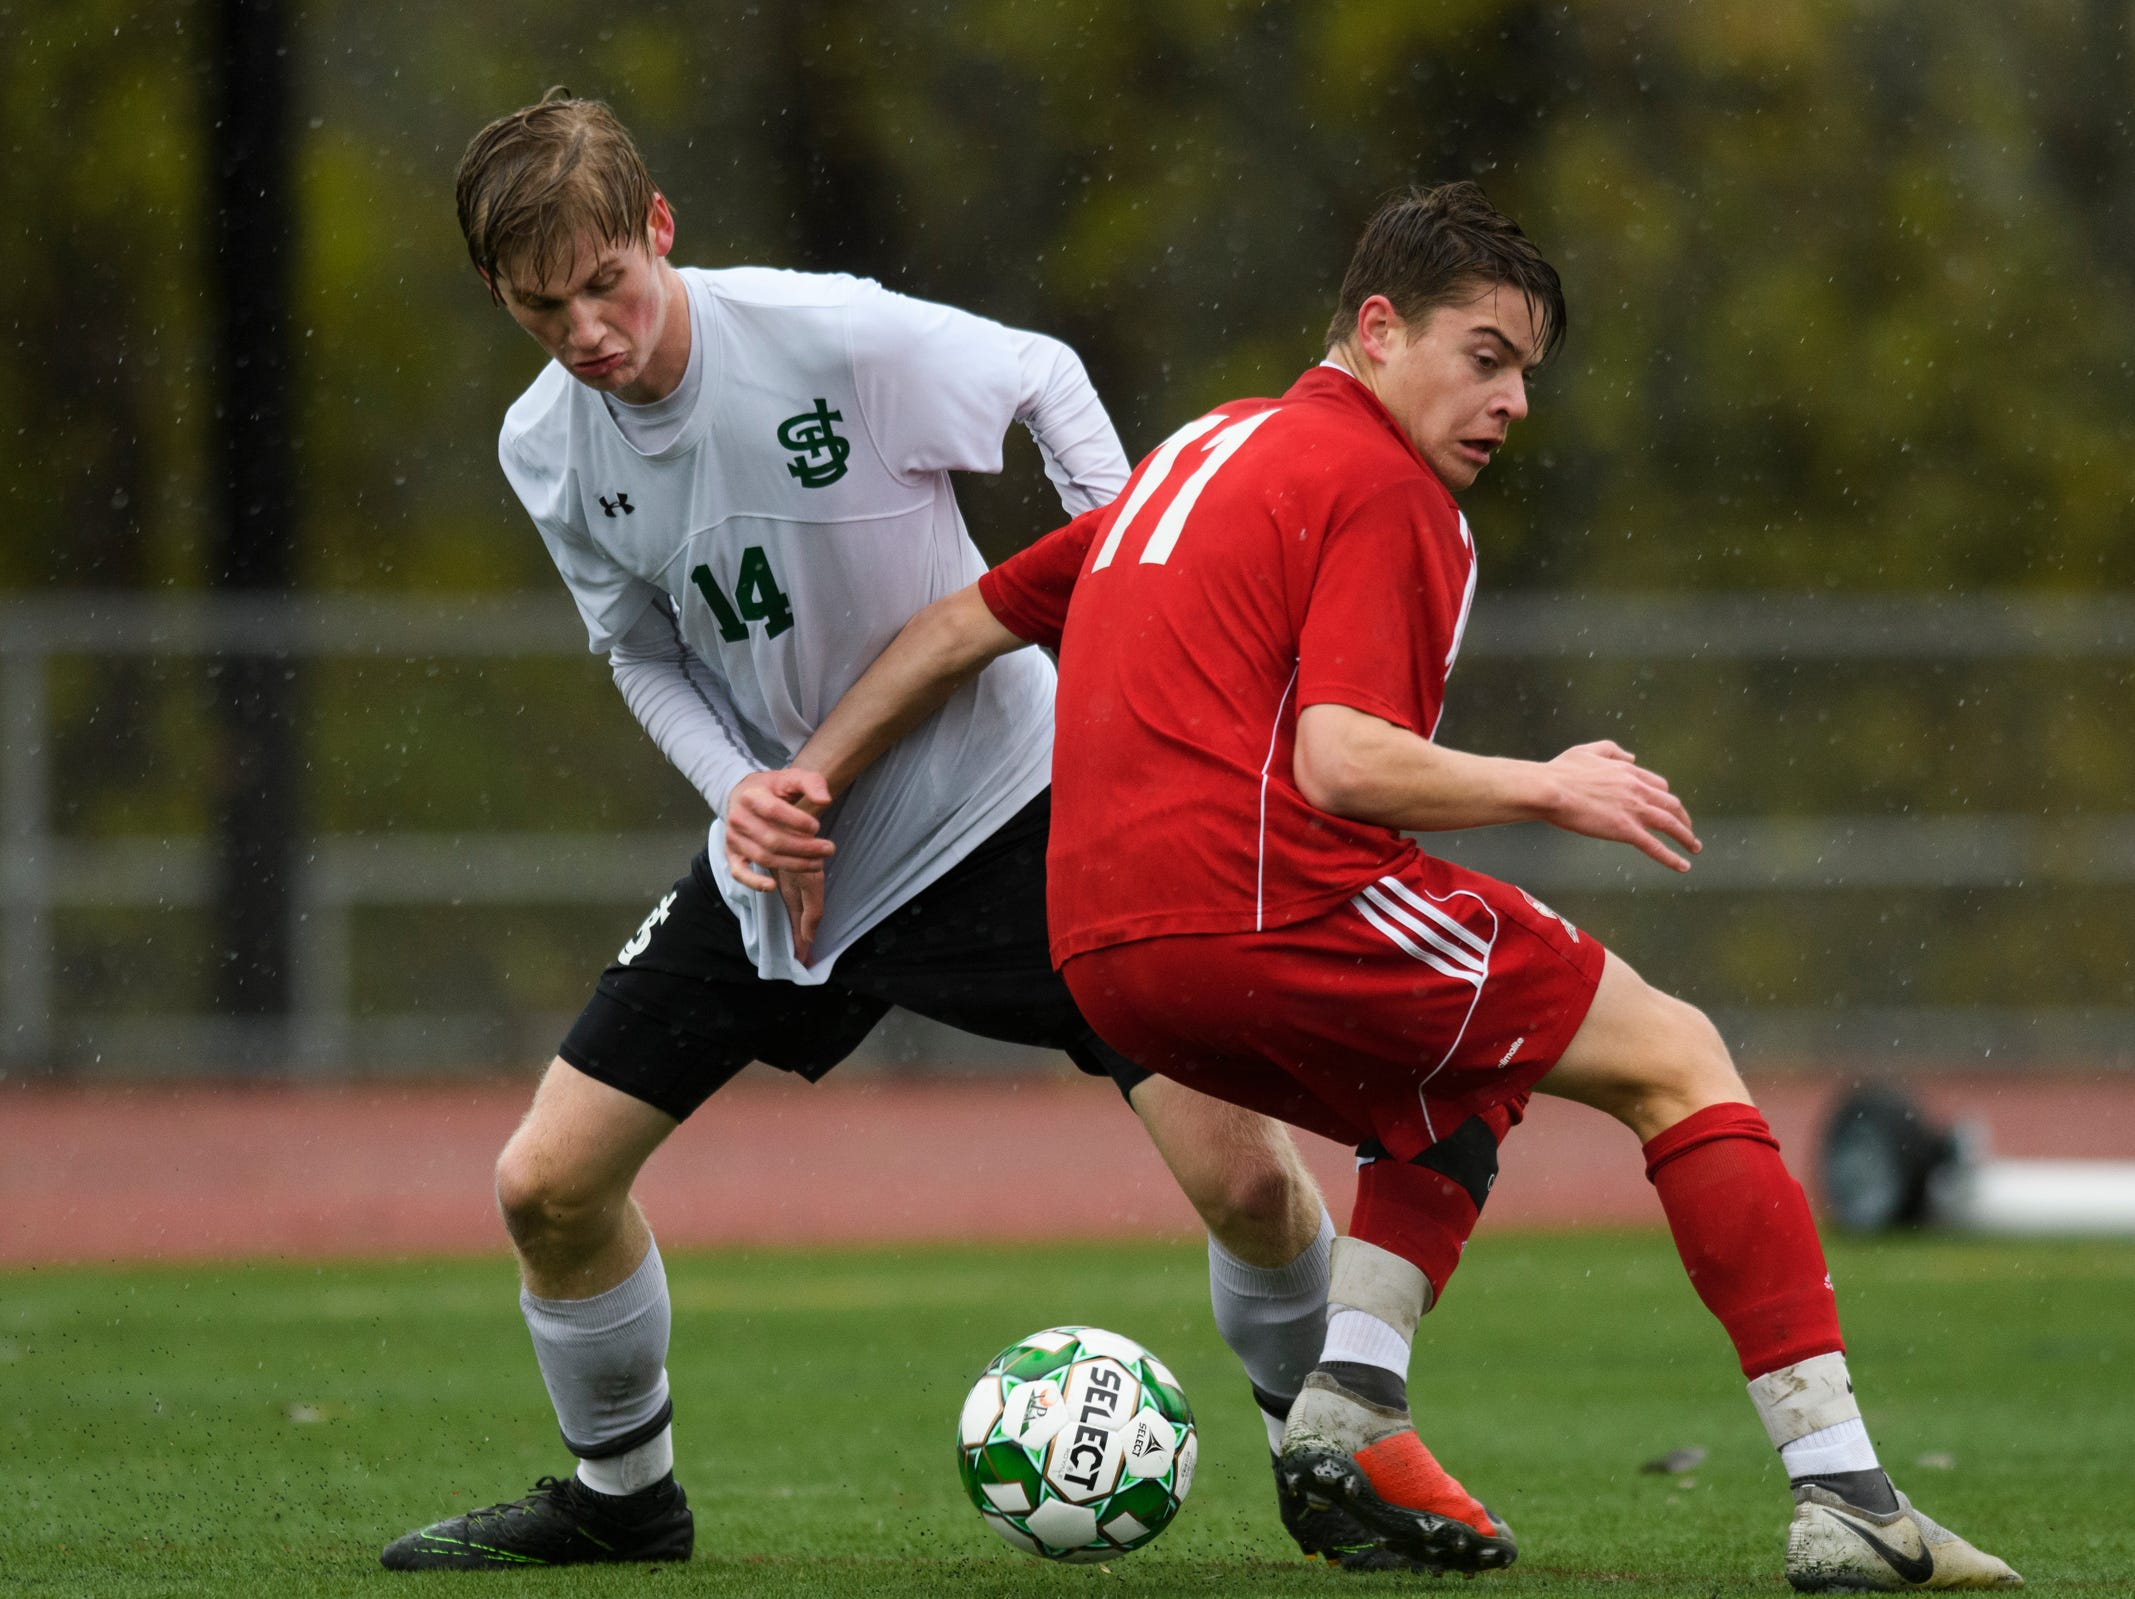 St. Johnsbury's Liam Tobin (14) battles for the ball with CVU's Caleb Martin (11) during the Division I boys soccer championship game between the St. Johnsbury Hilltoppers and the Champlain Valley Union Redhawks at Buck Hard Field on Saturday morning November 3, 2018 in Burlington.